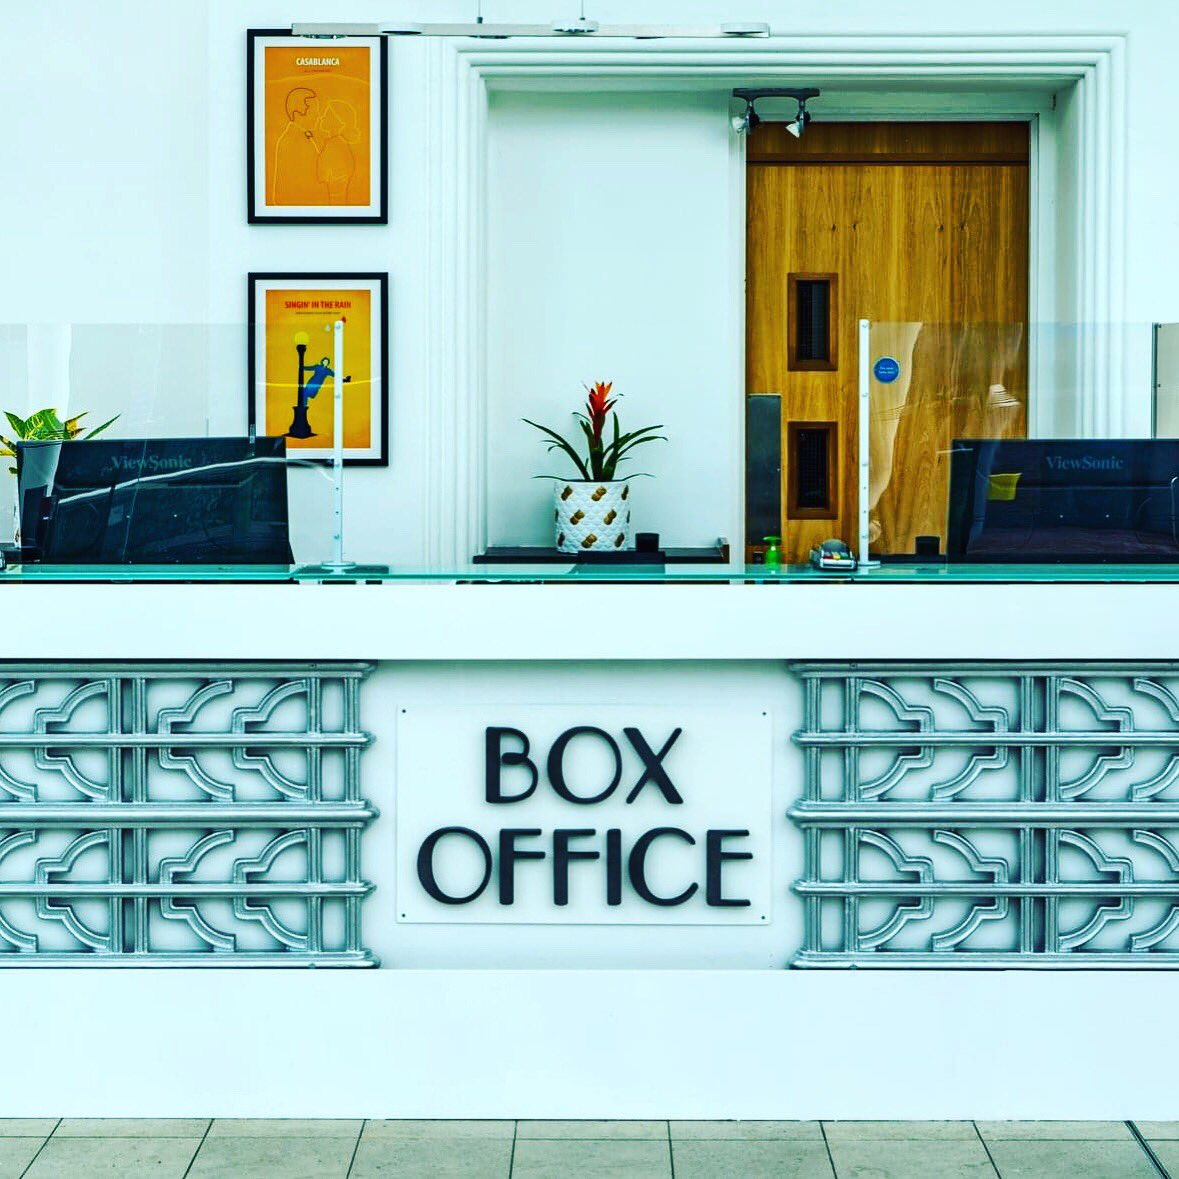 Our Box Office lines have now reopened.   Staff will be there to support your bookings from 12.15 - 8pm daily.   📞 01403 750220  #tickets #queries #questions #support #information #boxoffice #cinema #film https://t.co/ThhL4rVlbA